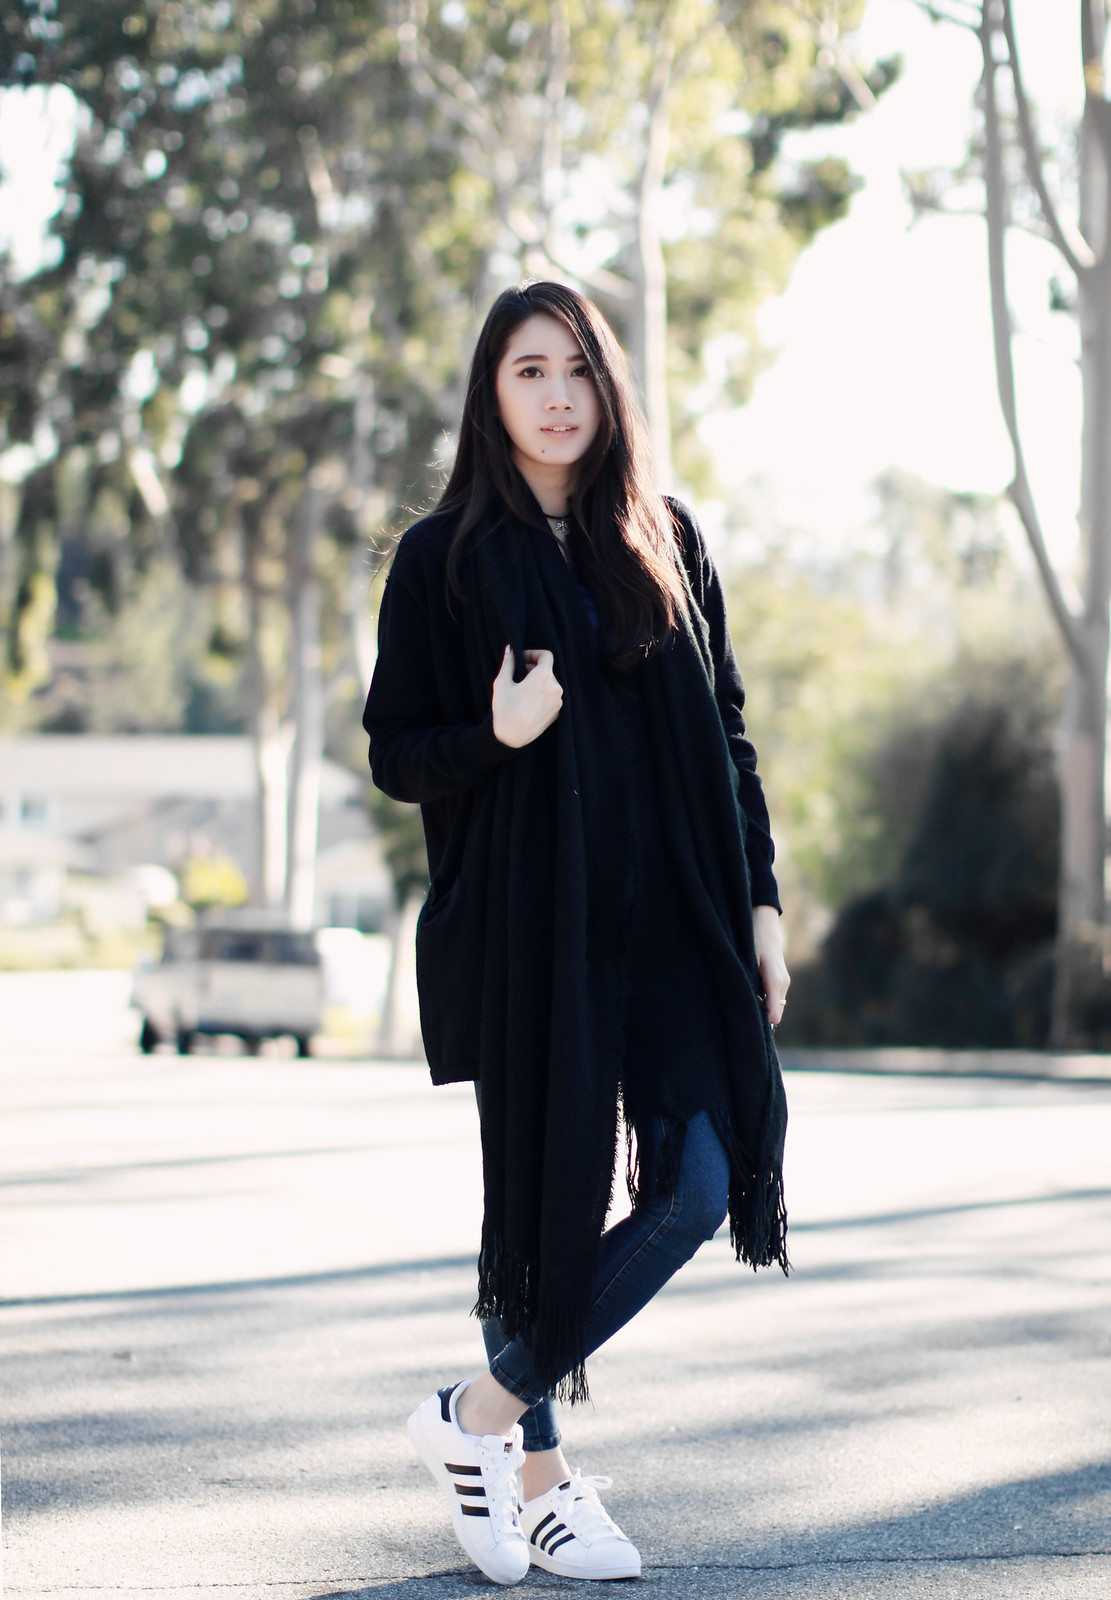 1729-ootd-fashion-embroidered-cardigan-los-angeles-city-of-angels-adidas-forever21-winterfashion-outfitoftheday-clothestoyouuu-elizabeeetht